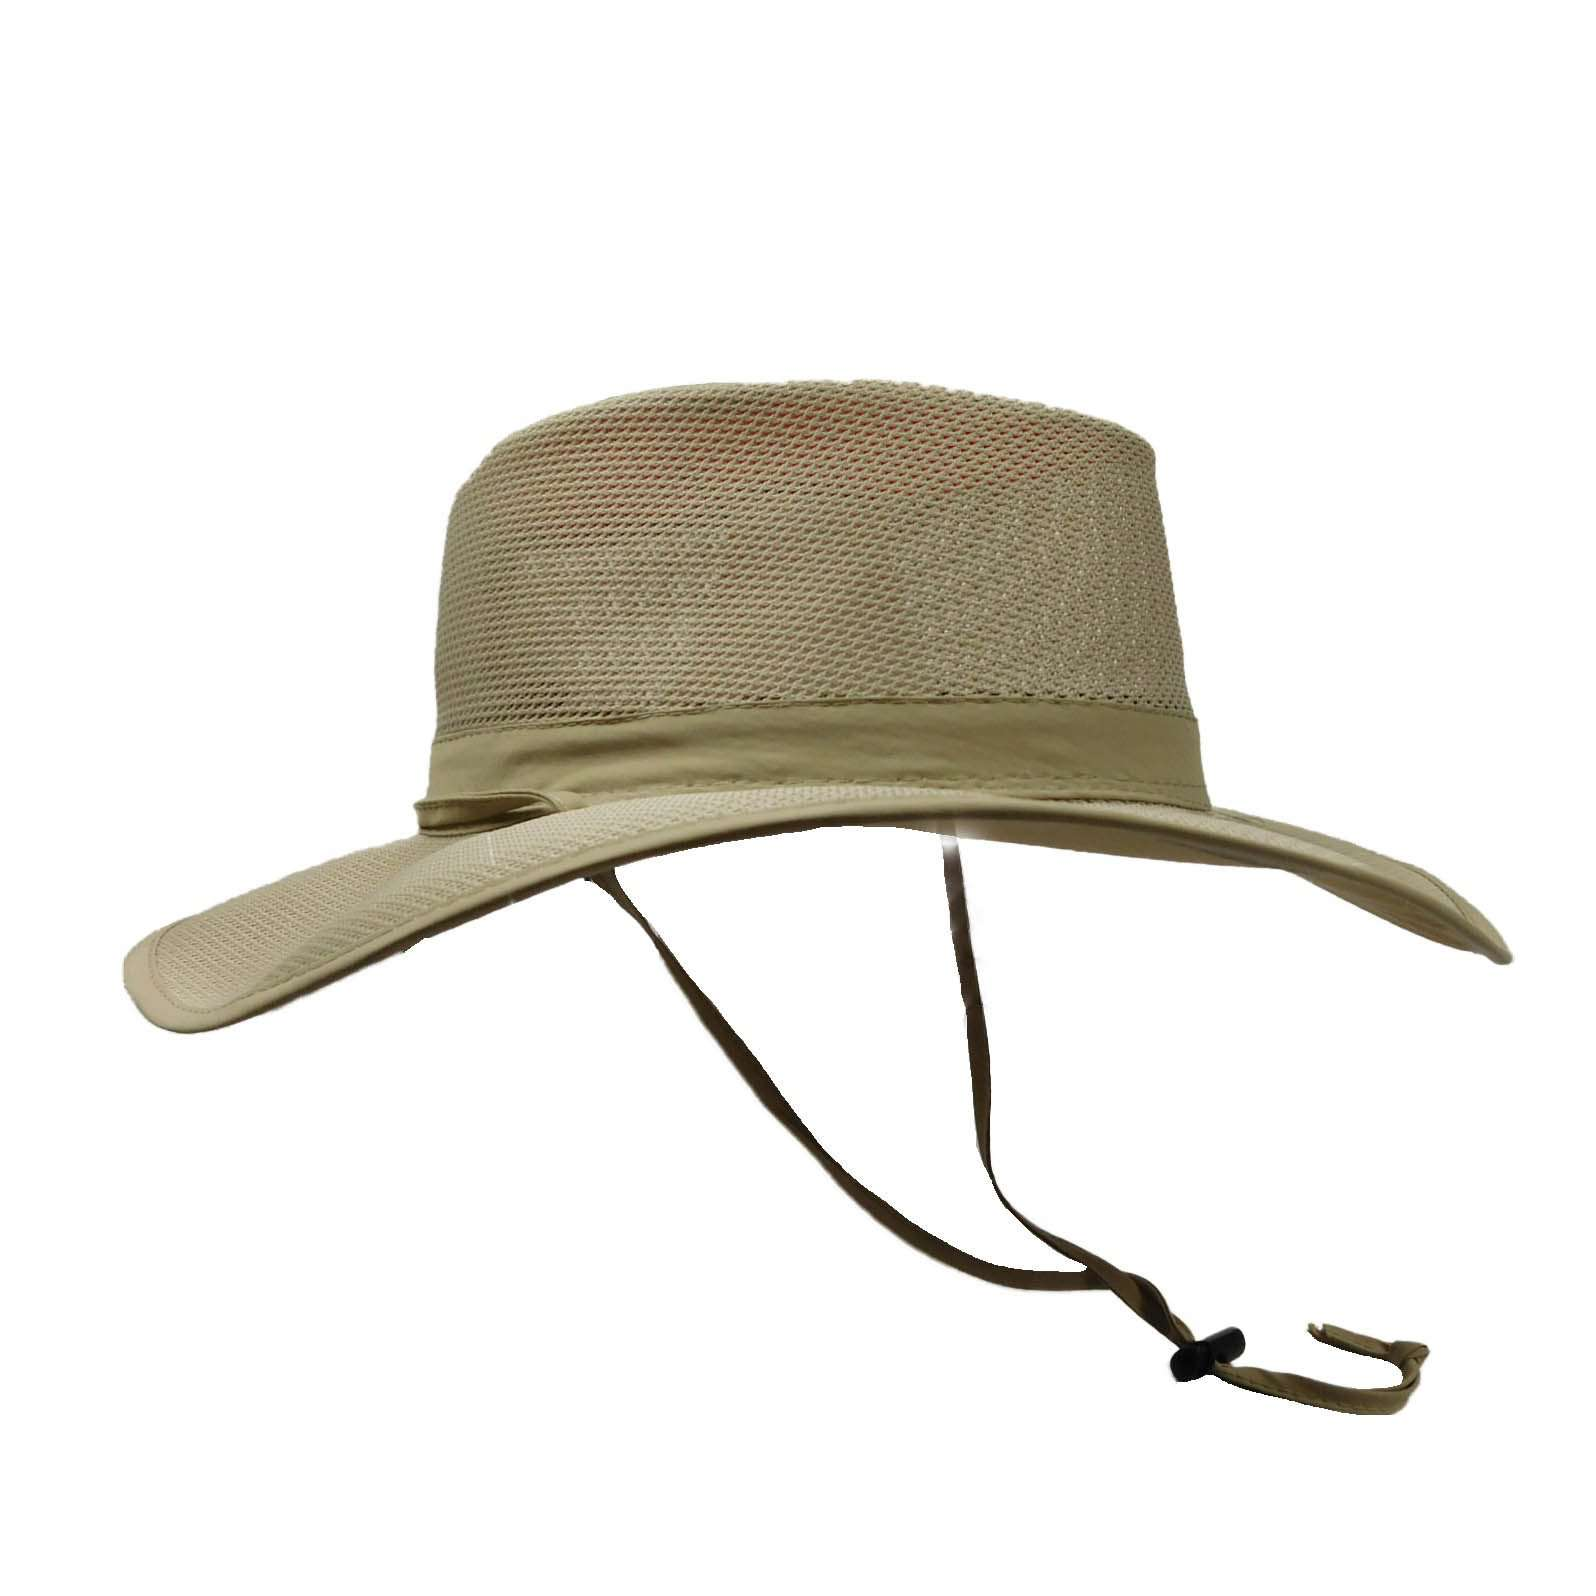 Stetson No Fly Zone Mesh Brim Safari Hat  a855b6466c